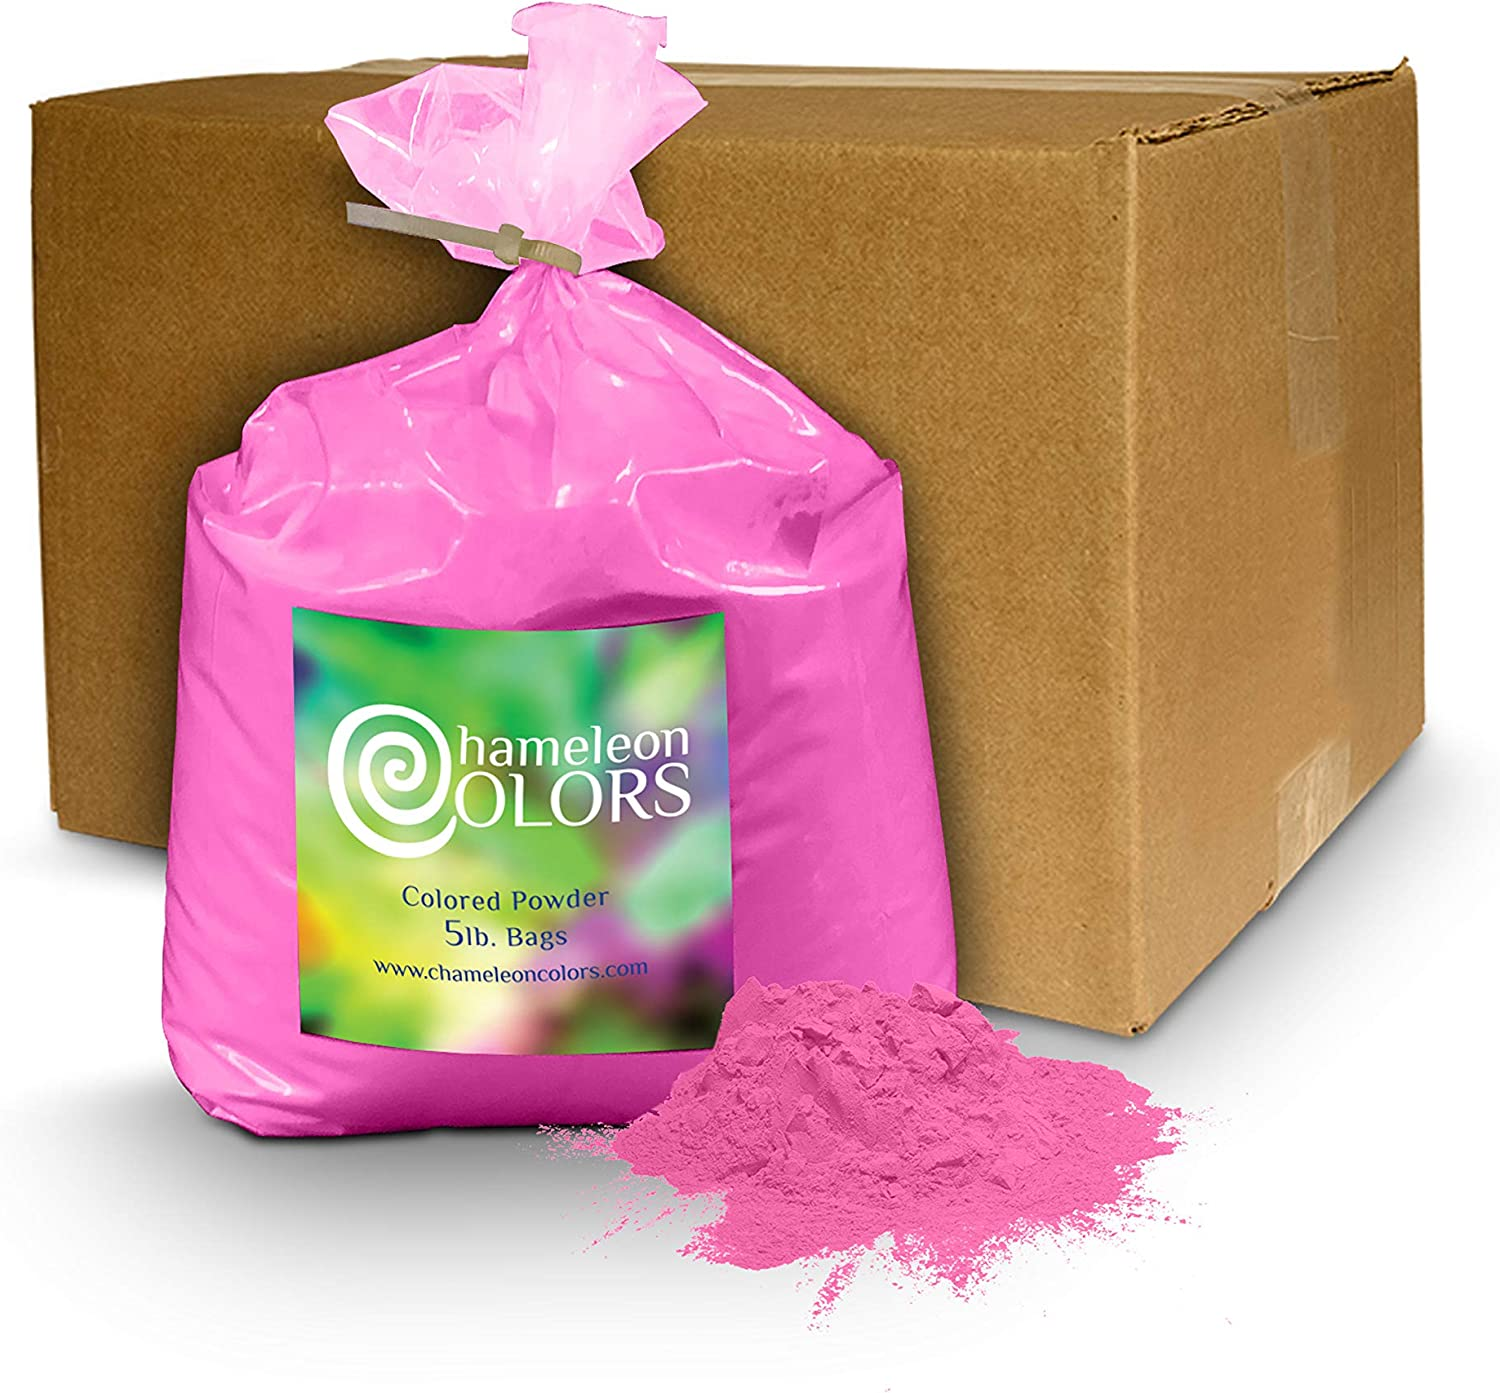 Holi Powder Gender Reveal by Chameleon Colors – 5lb Pink. Same premium, authentic product used for a color races, 5k, etc.